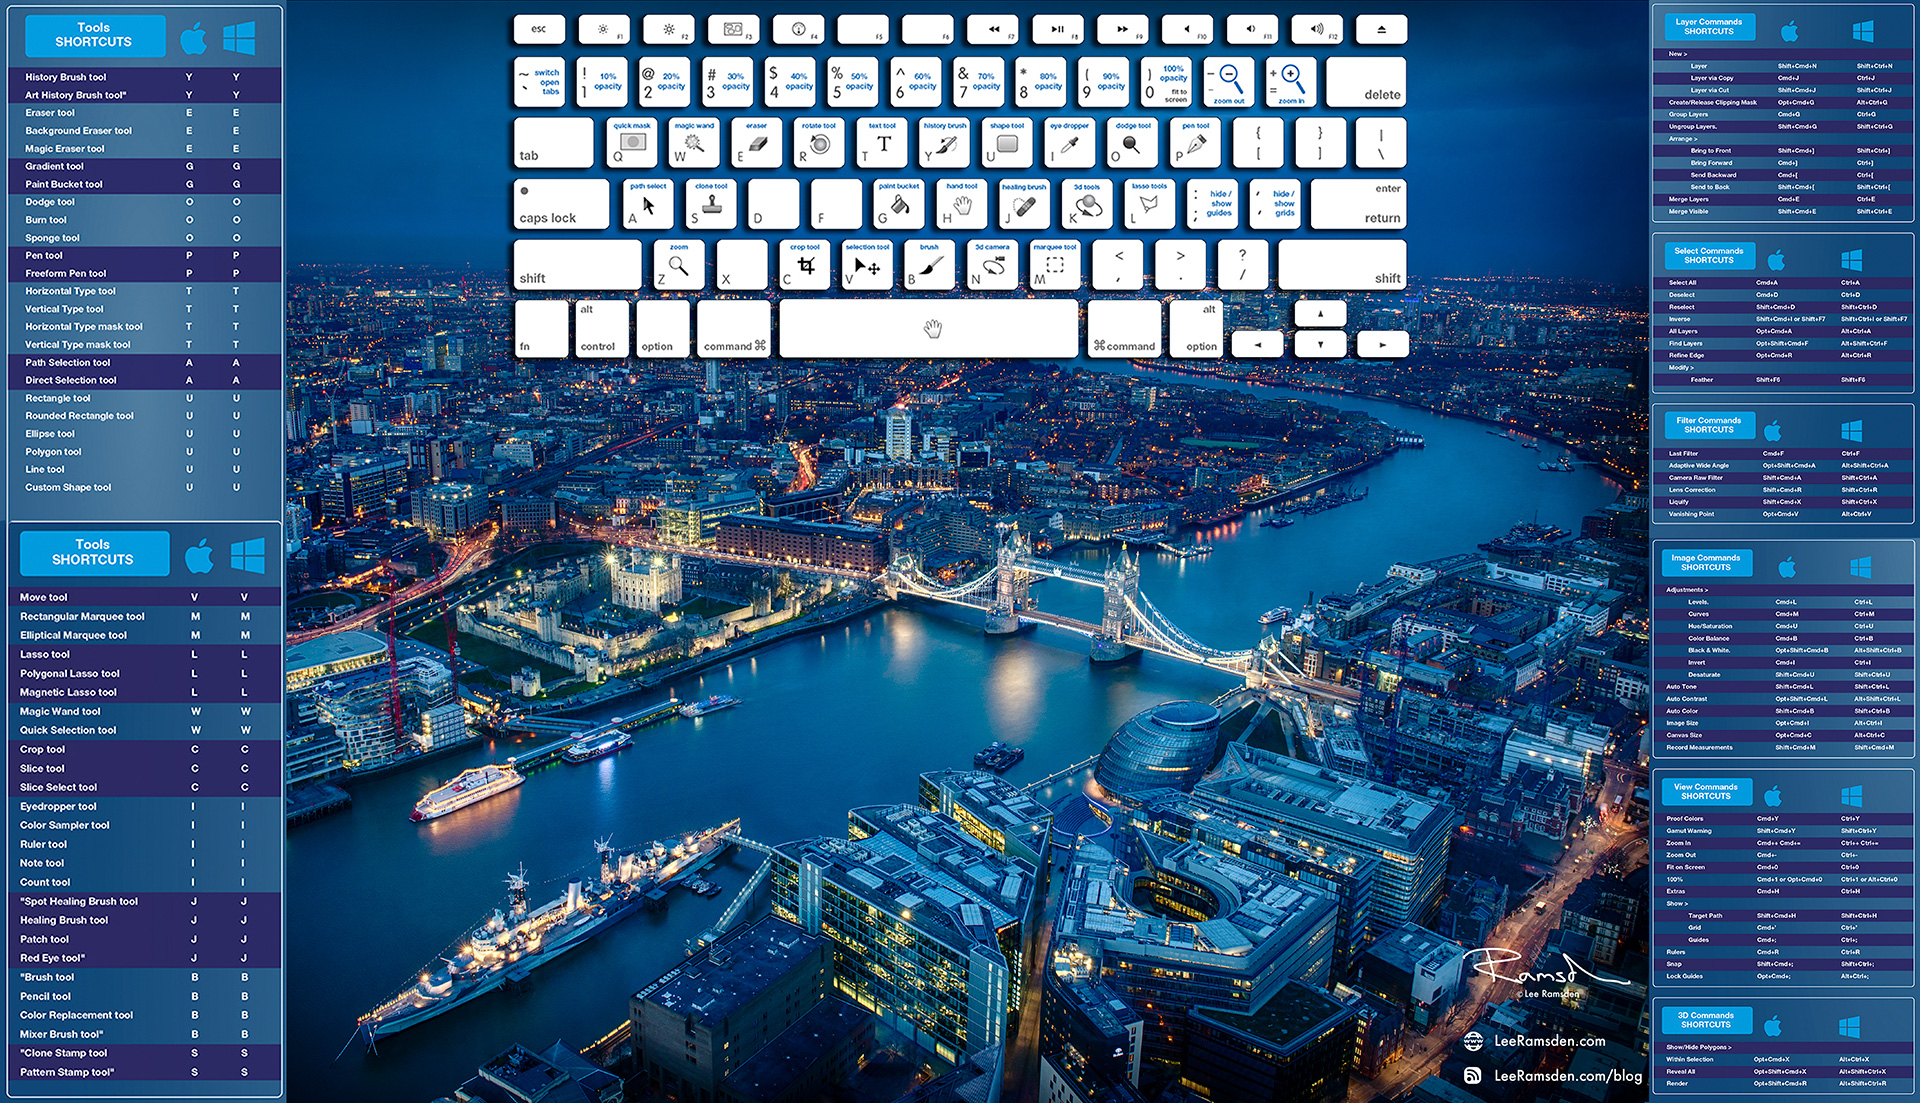 London veiw from the Shard photoshop short cuts education help tutorial Lee Ramsden